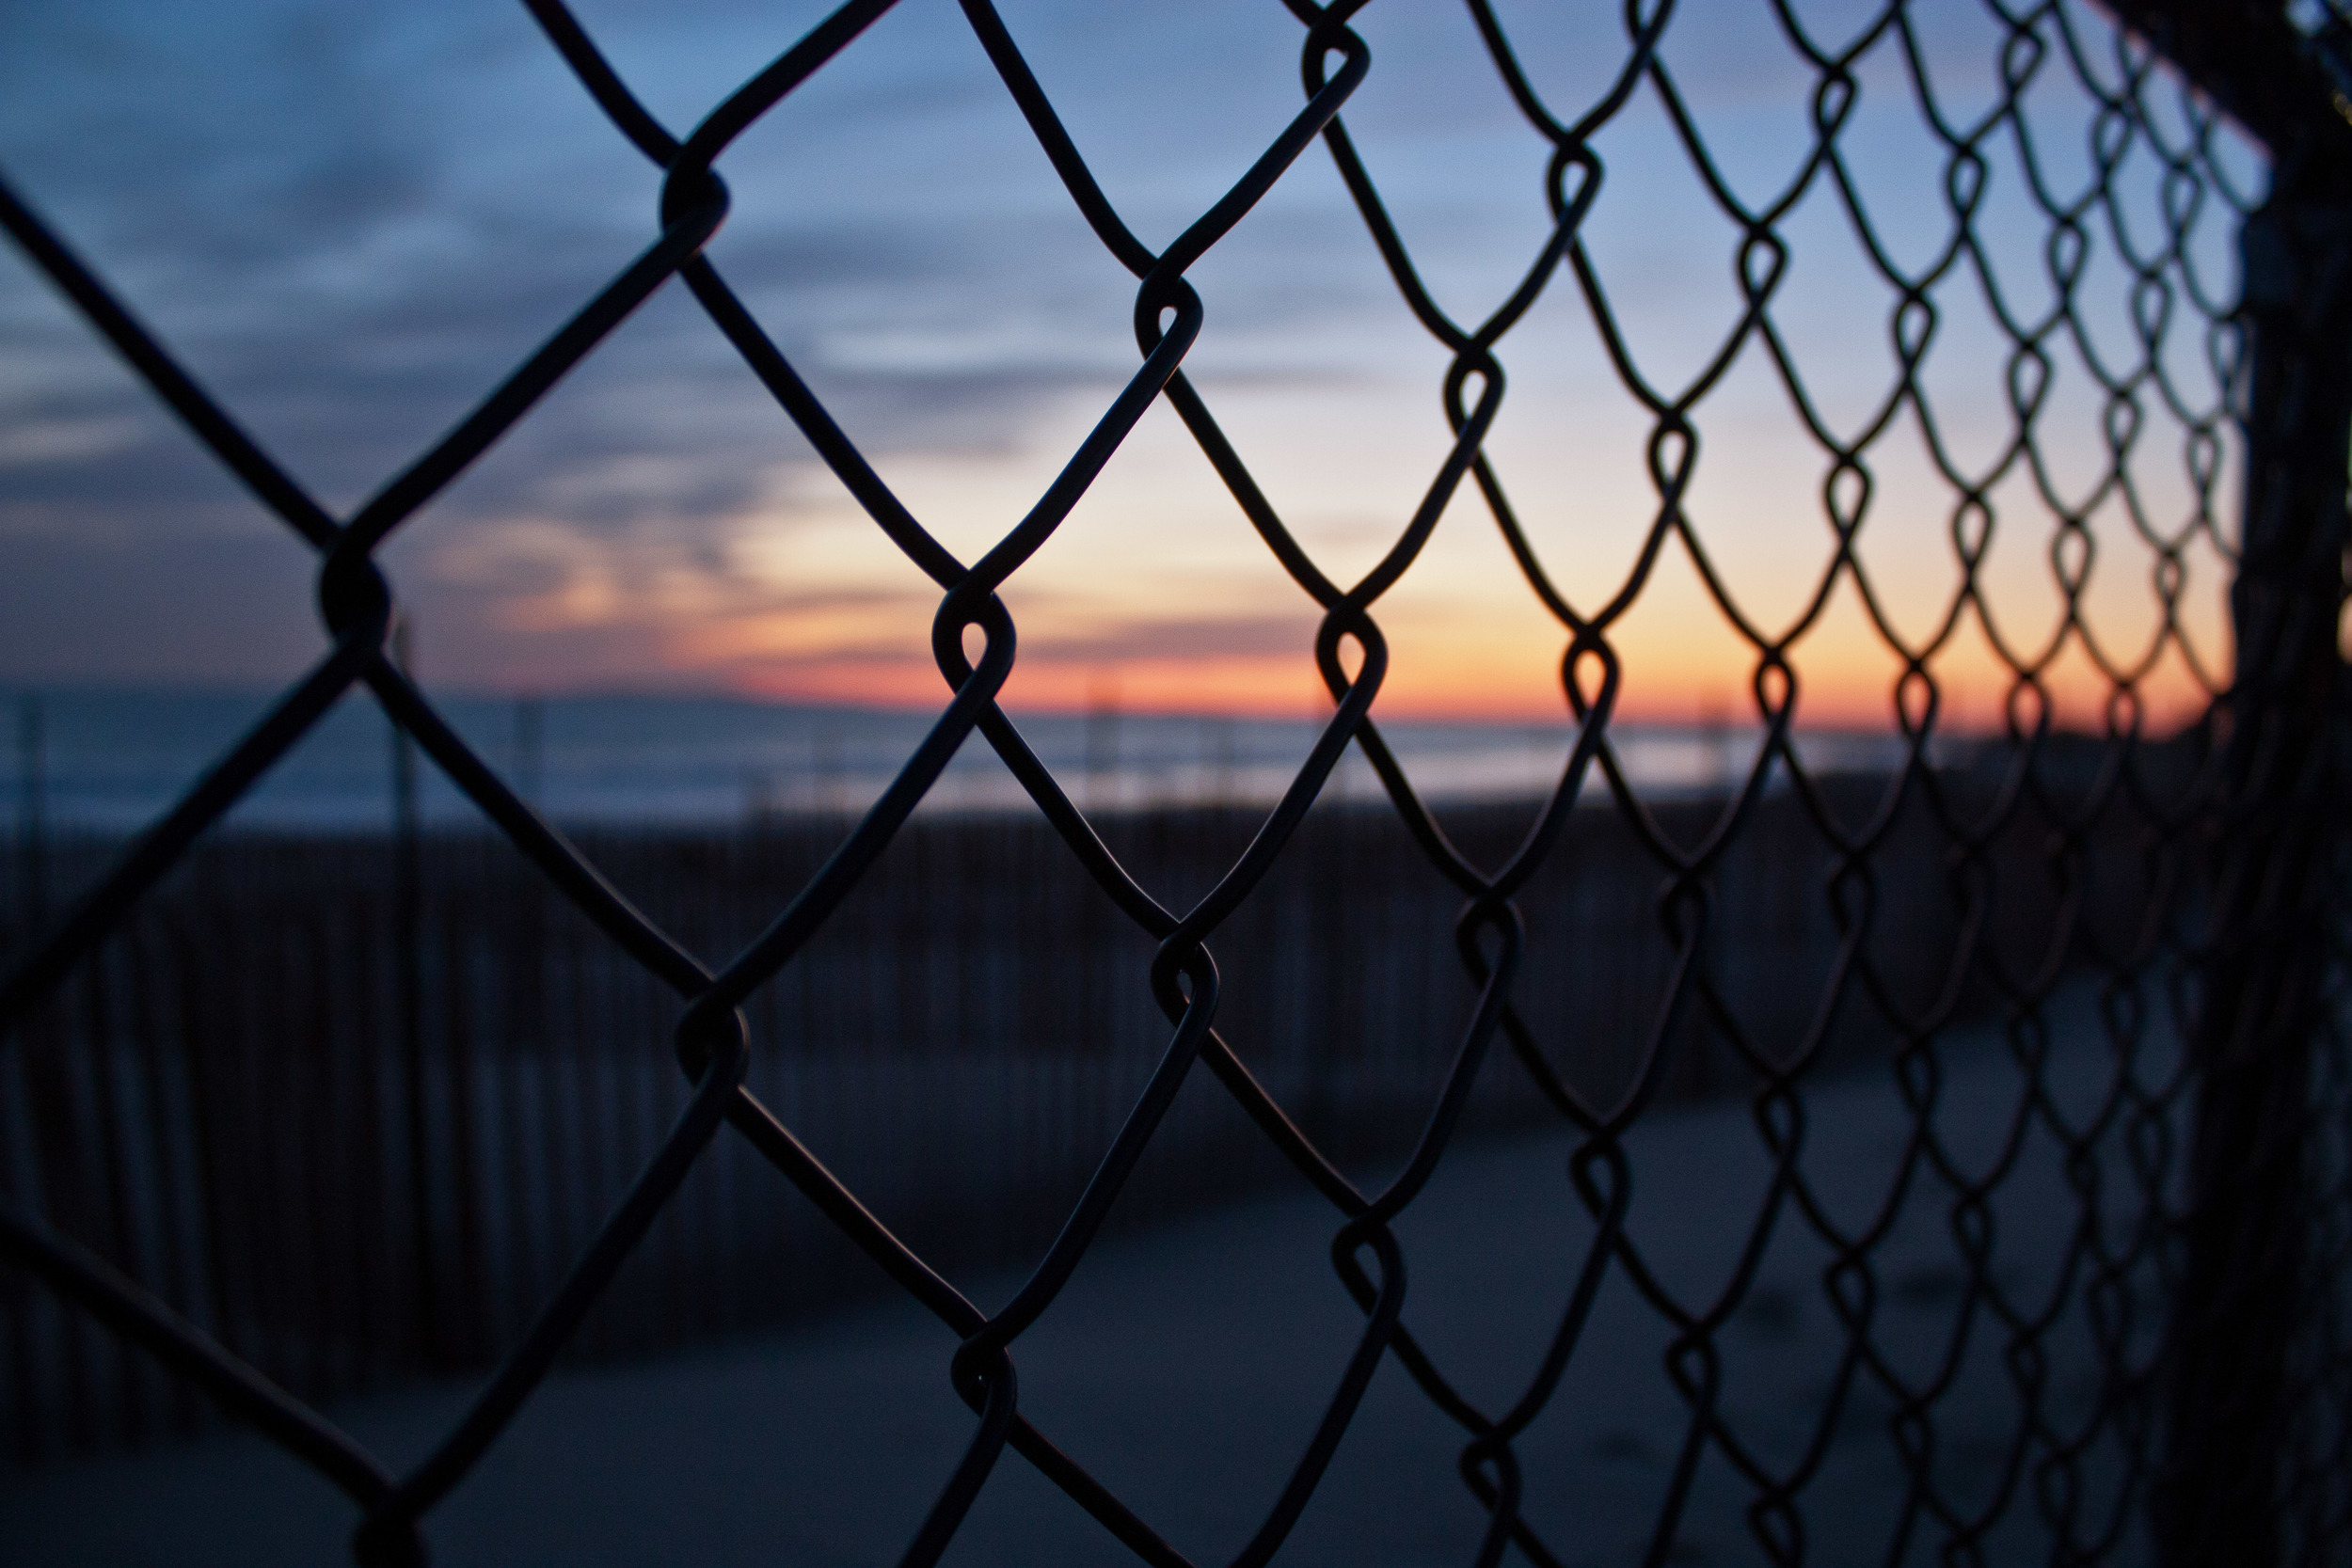 napatree fence sunset alue optics